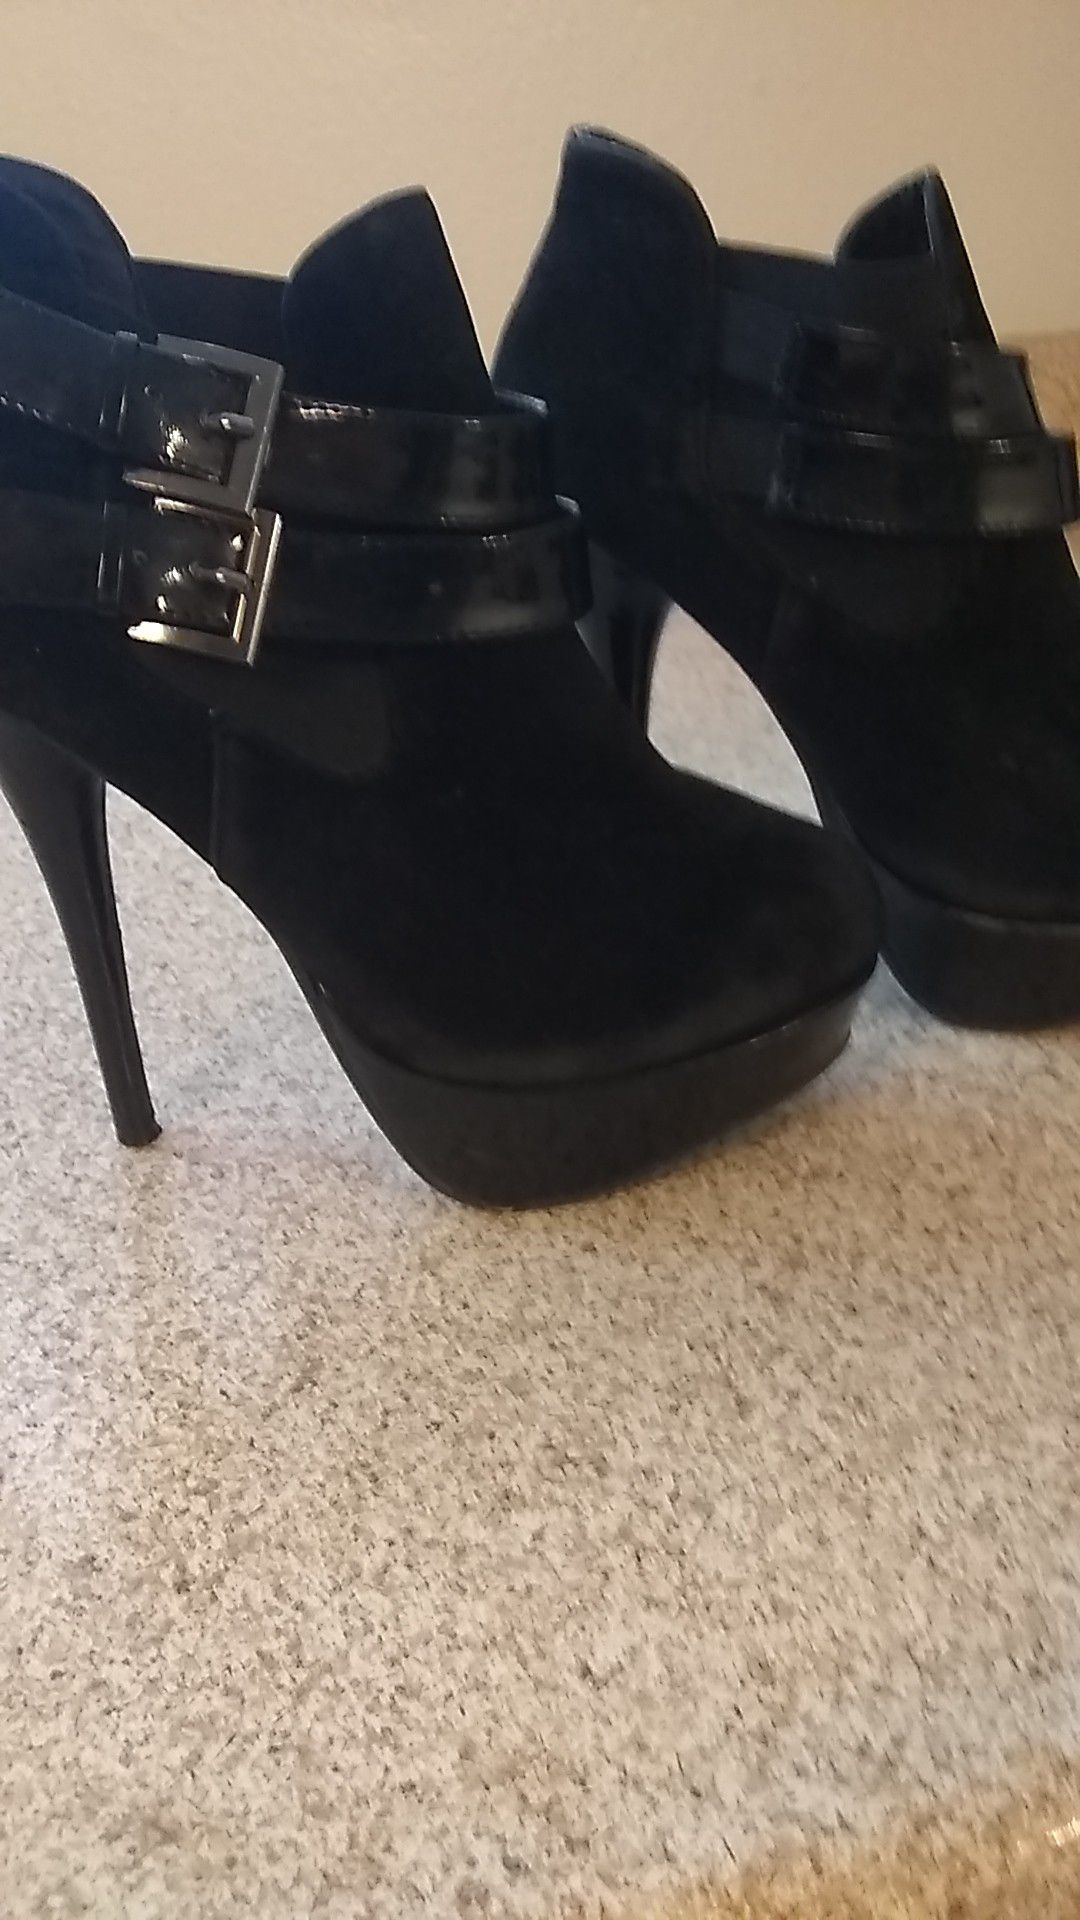 Size 6 1/2